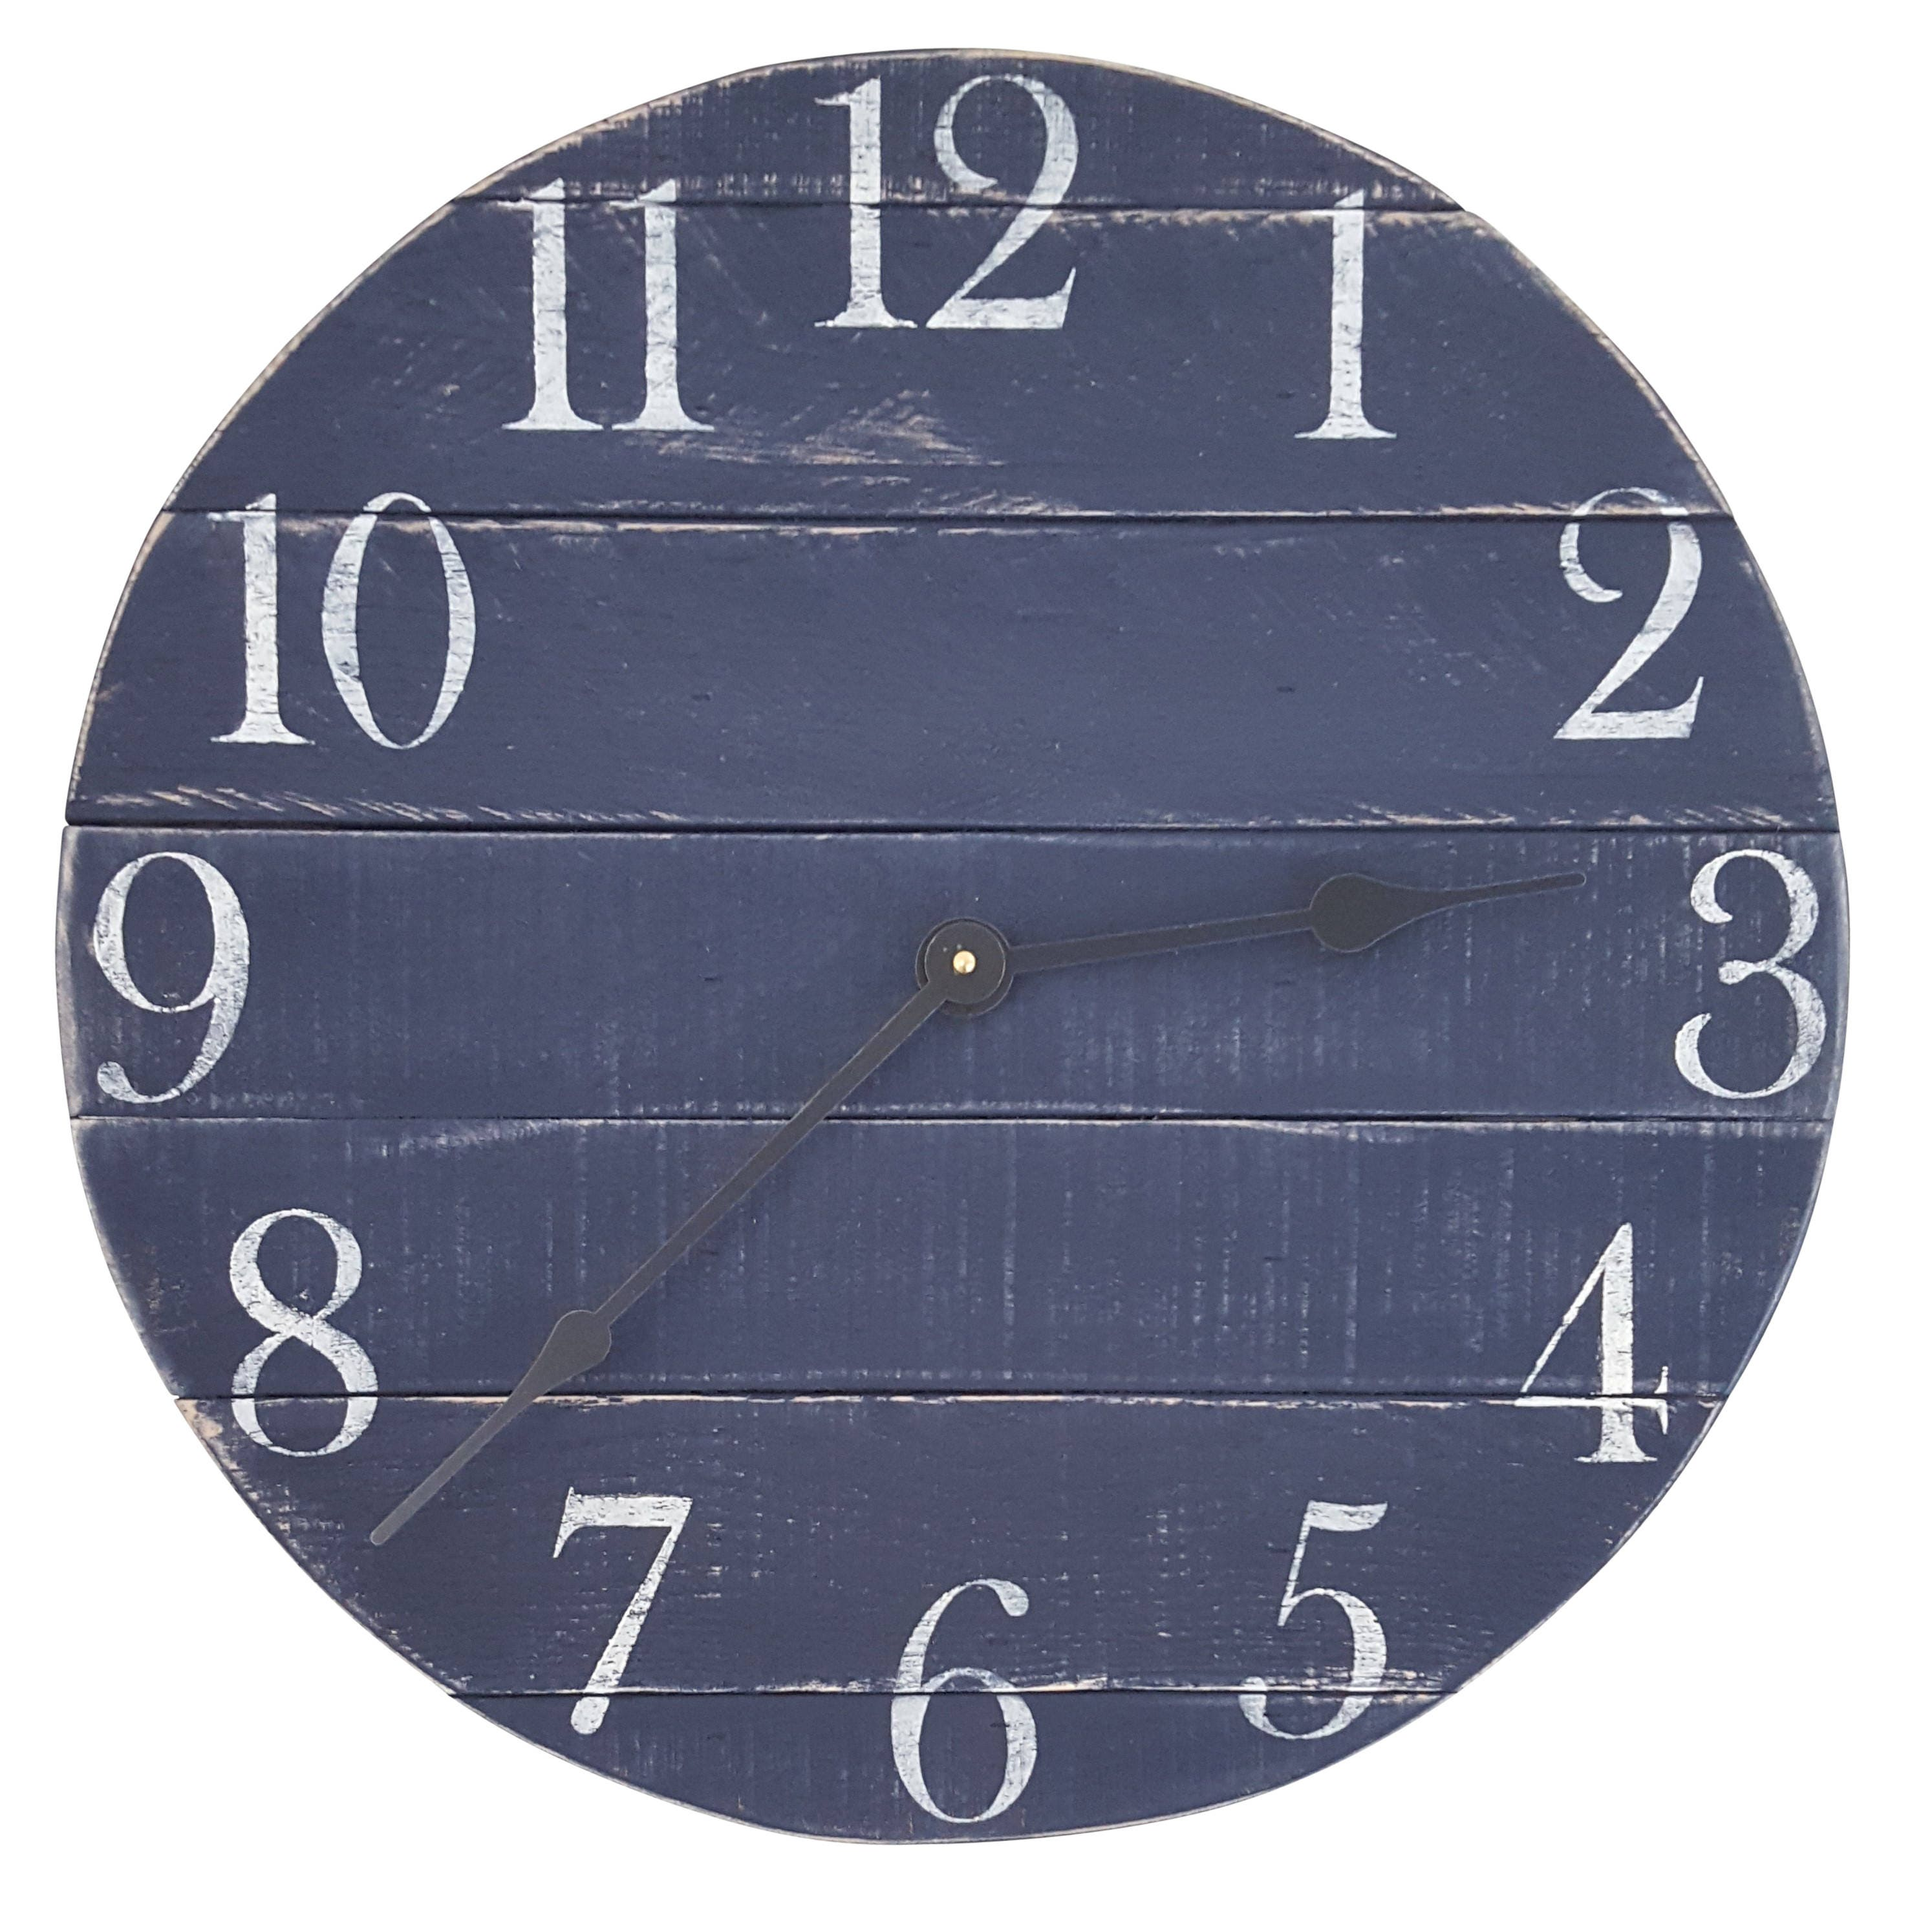 Navy blue clock farmhouse clock reclaimed wood clock small navy blue clock farmhouse clock reclaimed wood clock small clock wall clock rustic clock number clock pallet clock amipublicfo Gallery